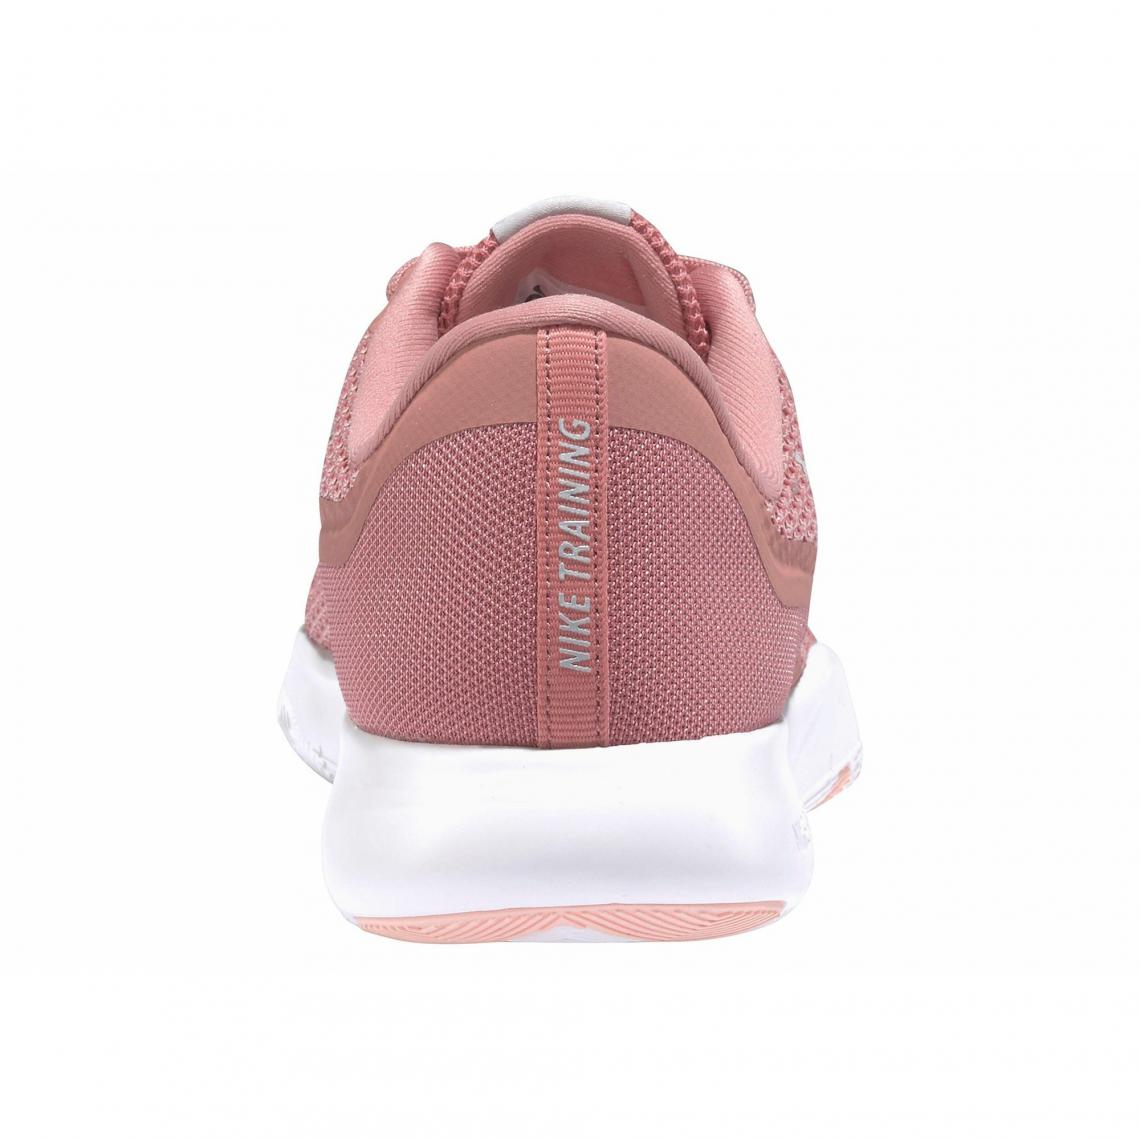 7f16995a2fc4 Chaussures de running Flex Trainer 7 Nike pour femme - Rose Sombre Nike